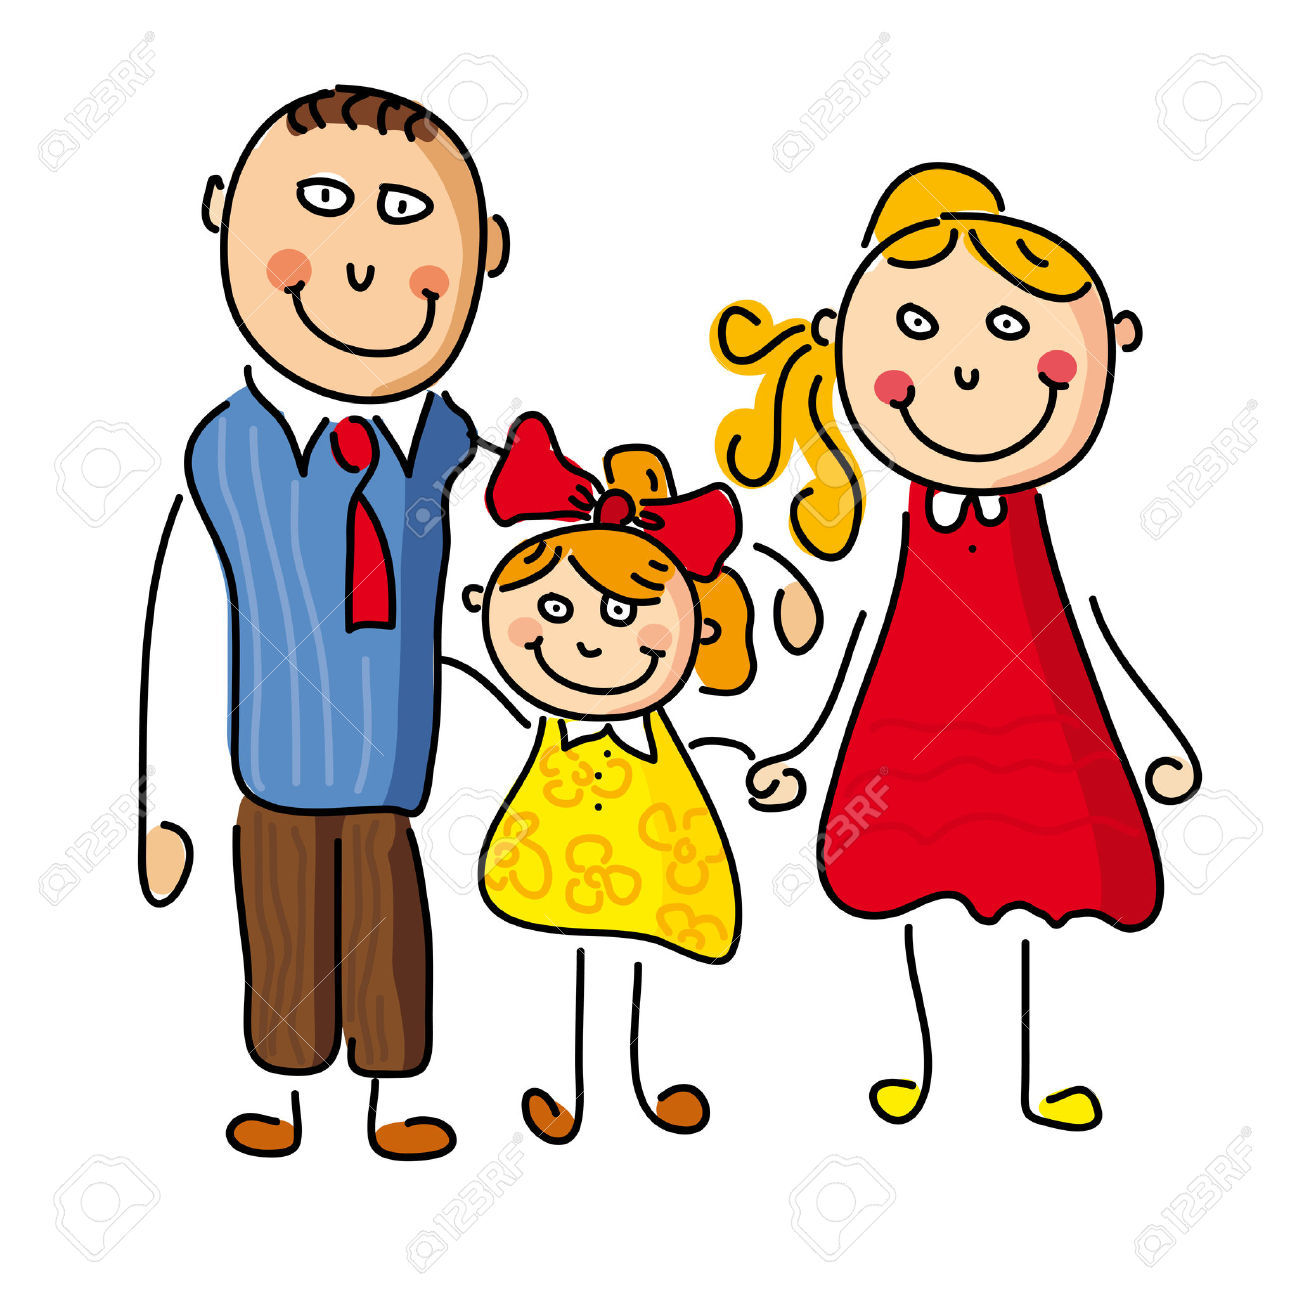 Clipart mama papa picture transparent download admin – Page 563 – Clipart Free Download picture transparent download